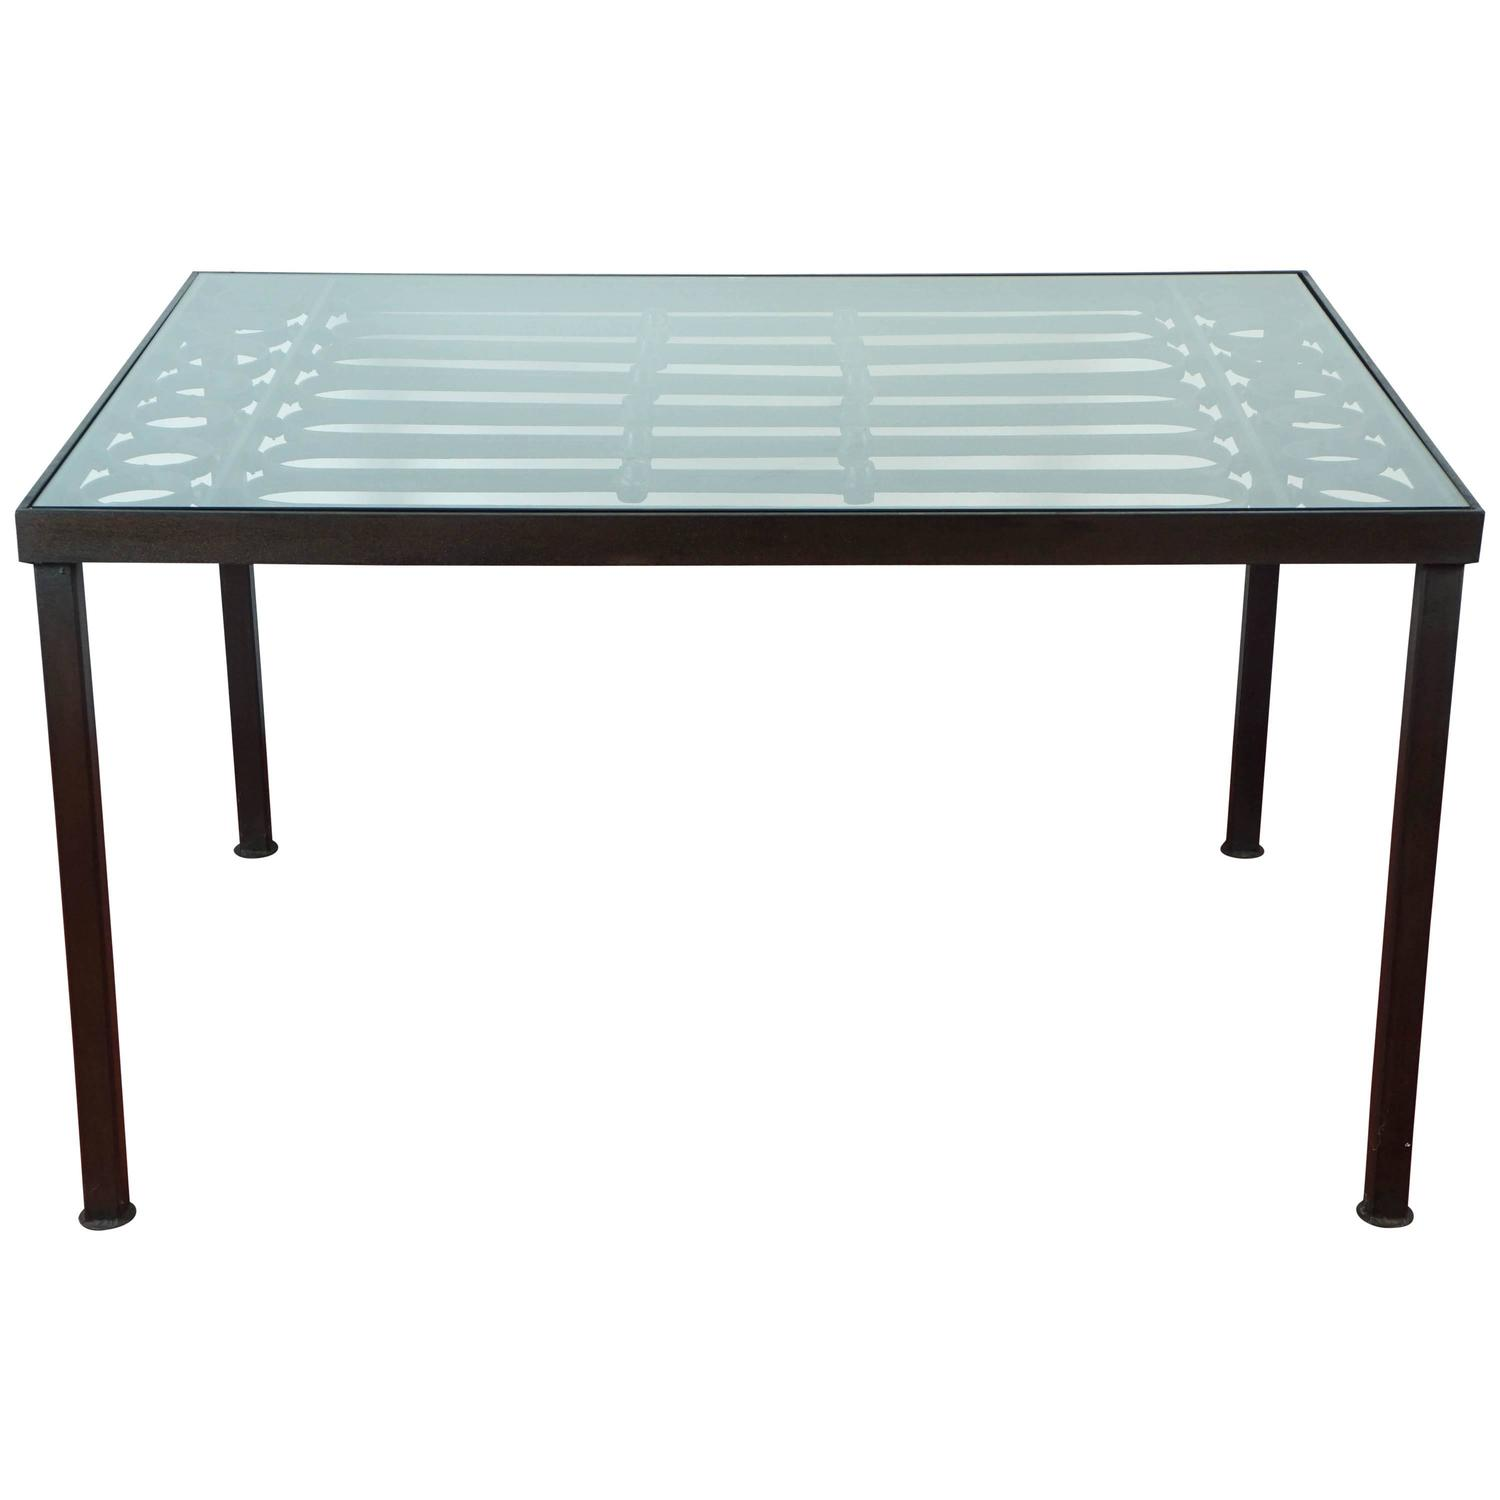 Wrought iron and glass indoor outdoor dining table for for Glass top outdoor dining table